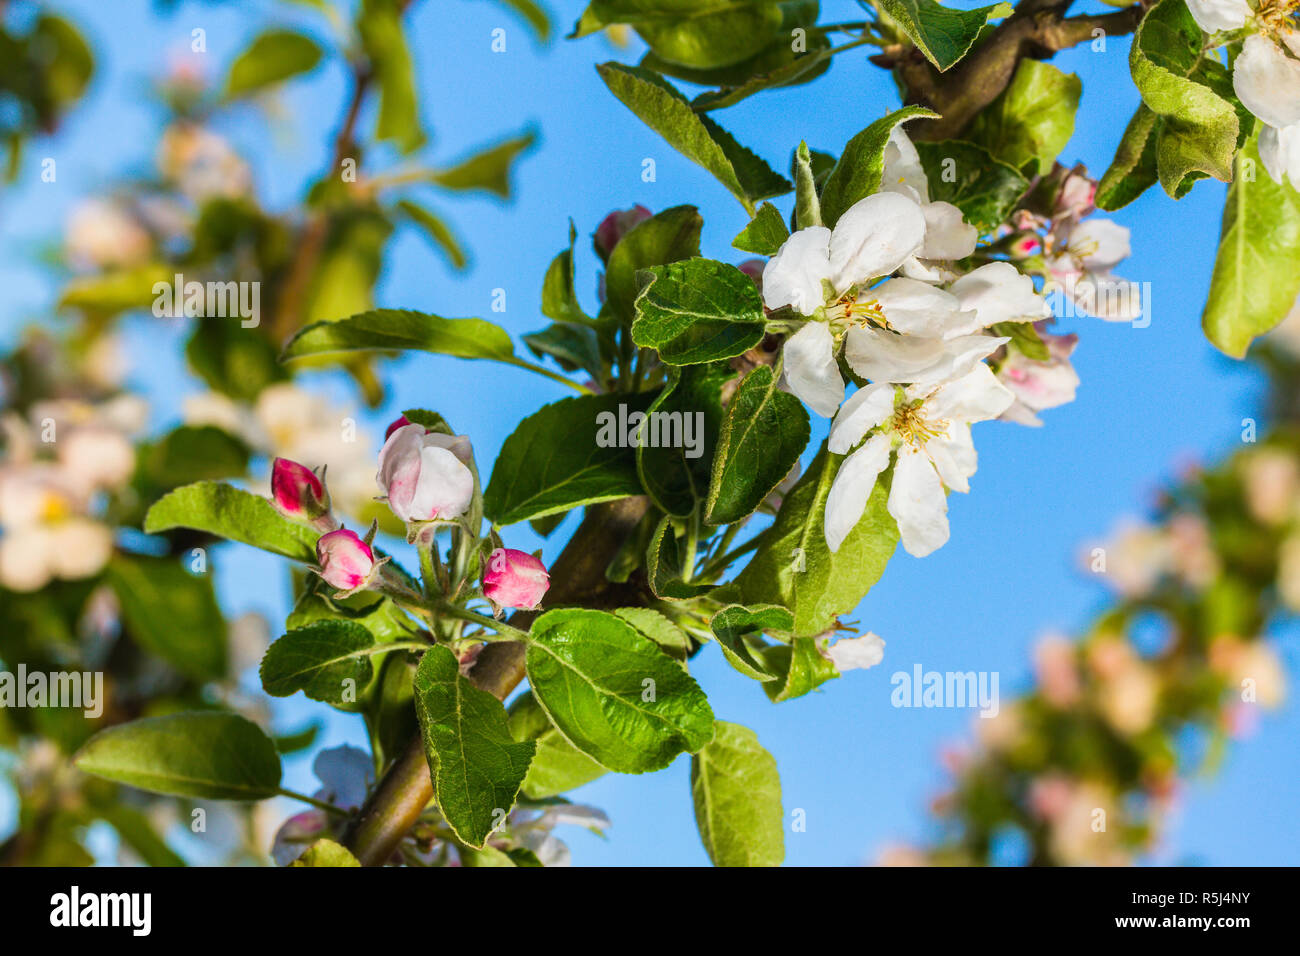 blooming apple tree - Stock Image